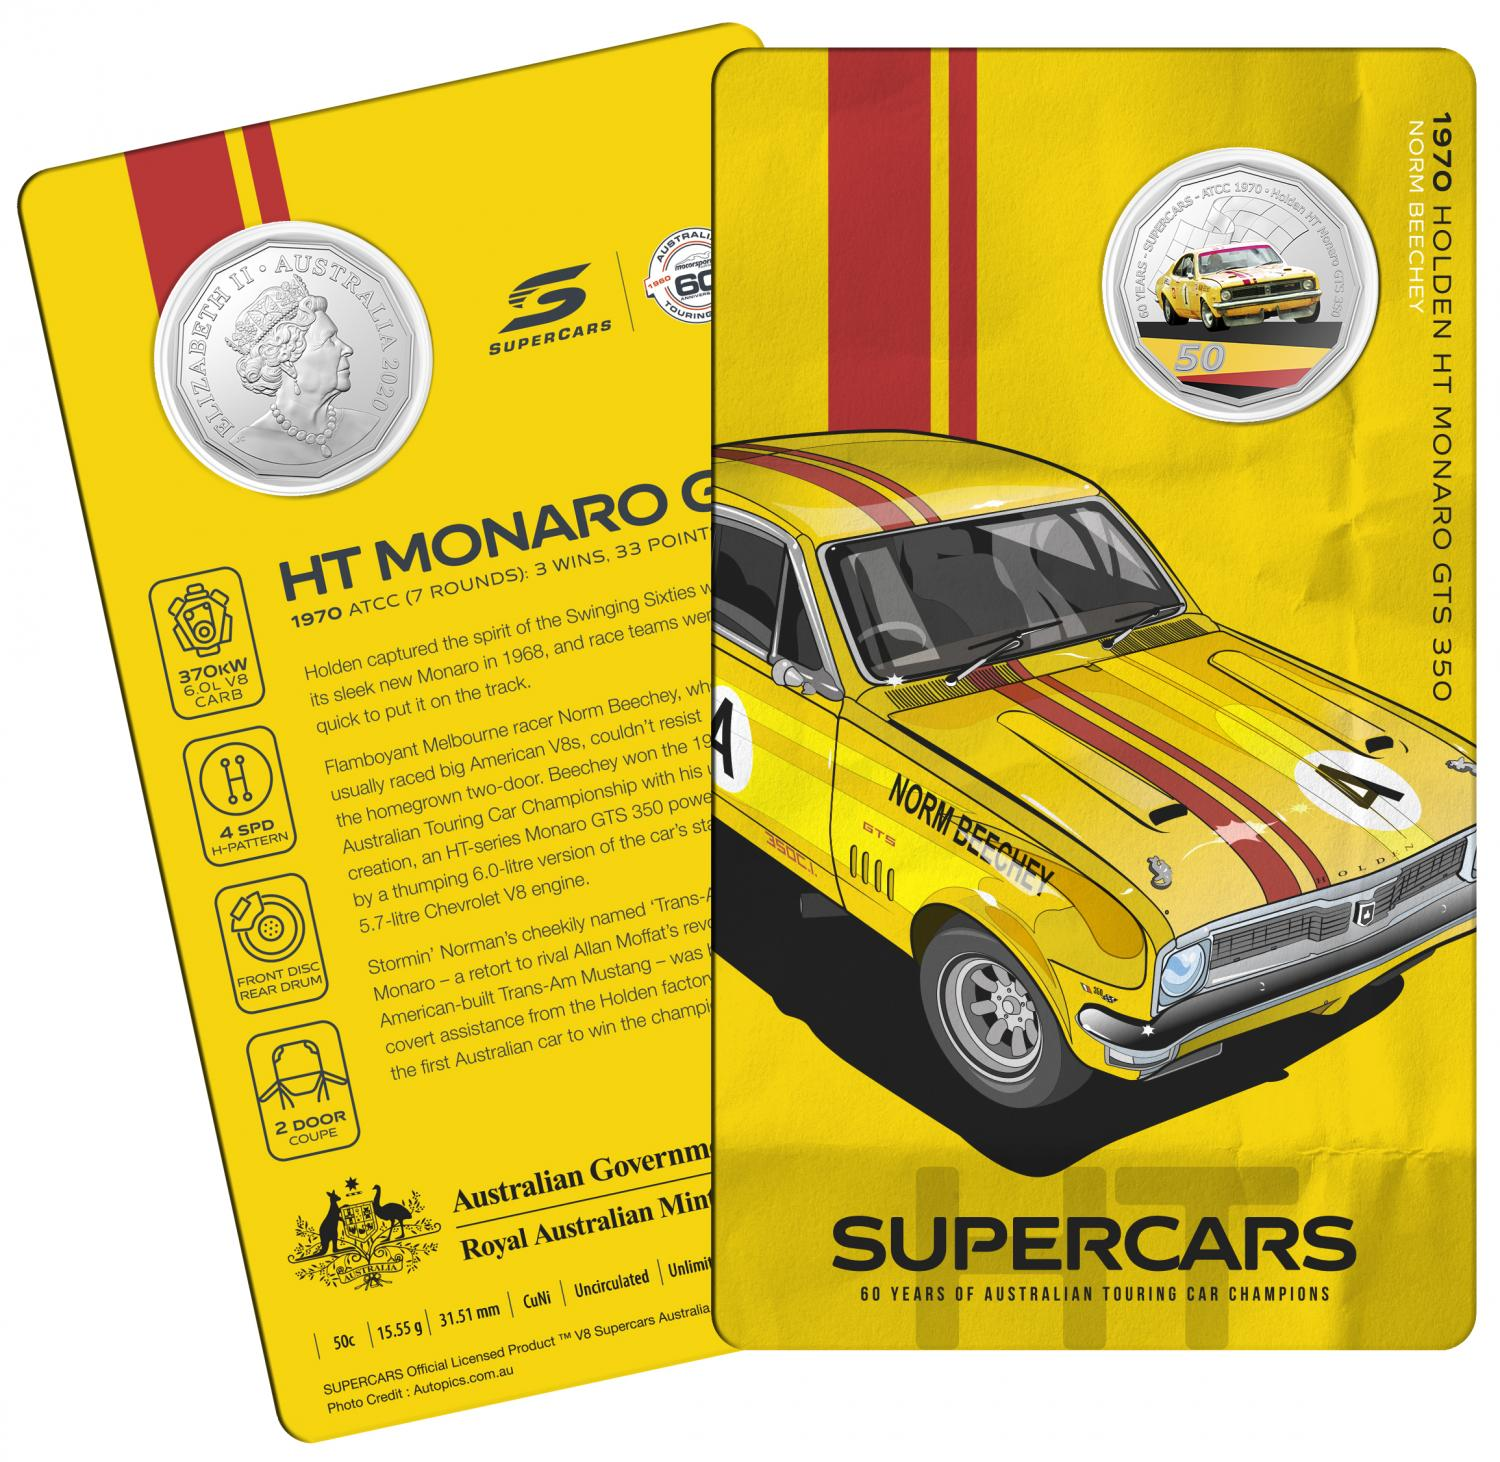 Thumbnail for 2020 60 Years of Australian Touring Car Champions Holden HT Monaro.  Order now for Delivery mid November!